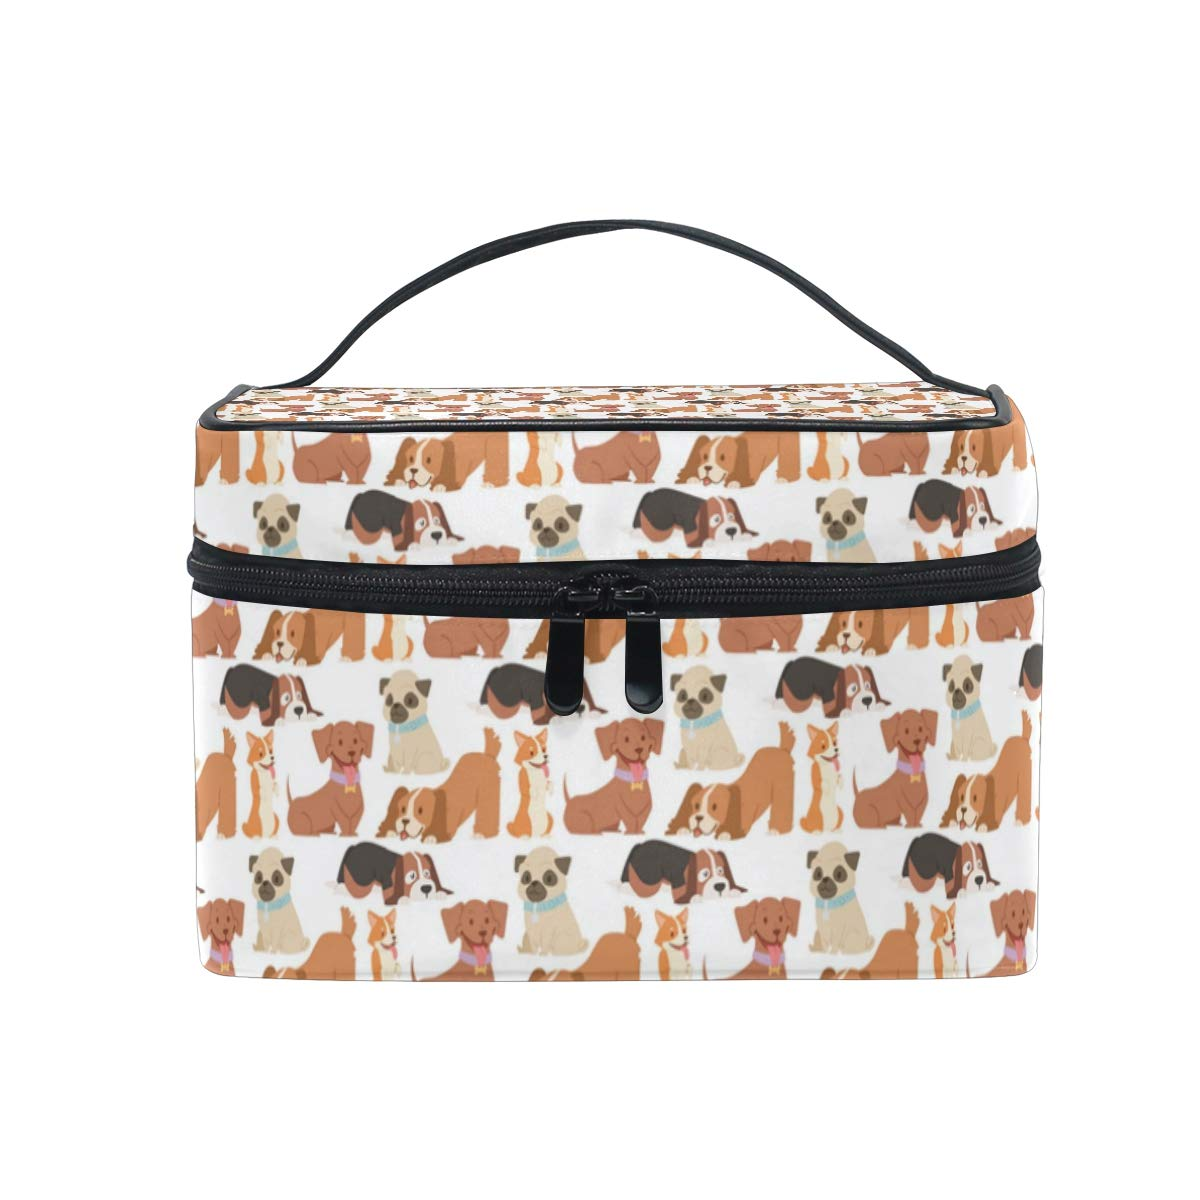 2a18a62c8494 Amazon.com : Cosmetic Bag Cute Puppy Playing DogsTravel Makeup Brush ...